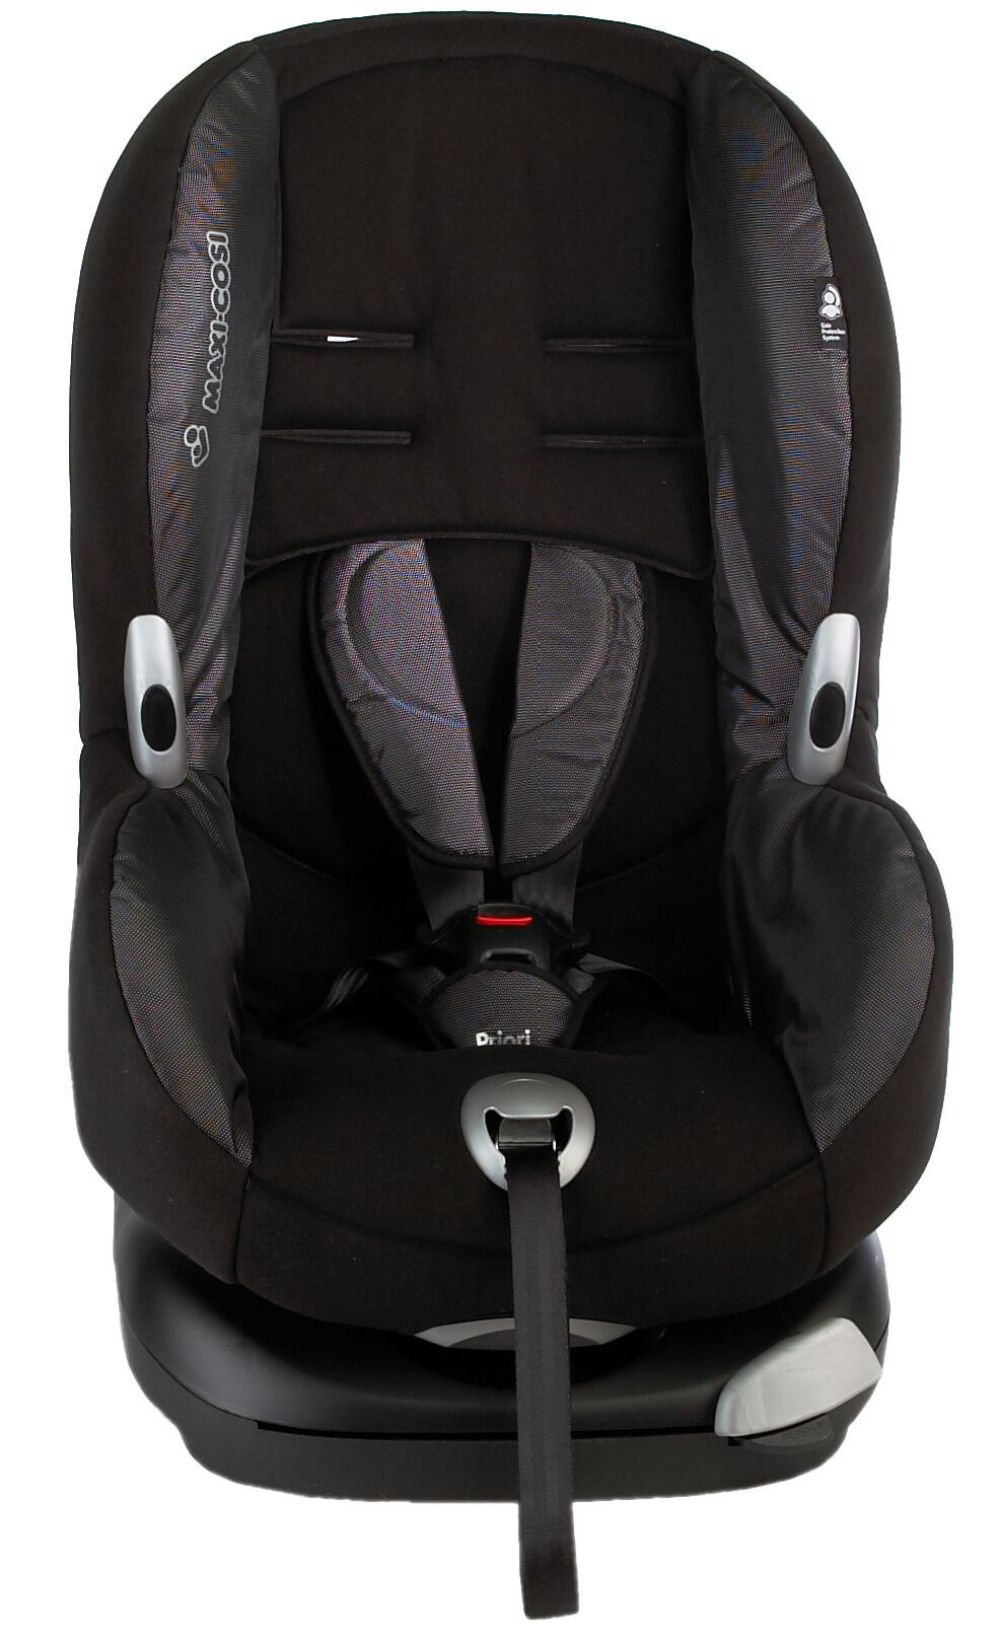 maxi cosi priori xp car seat for baby toddler child 9 months 4 years ebay. Black Bedroom Furniture Sets. Home Design Ideas